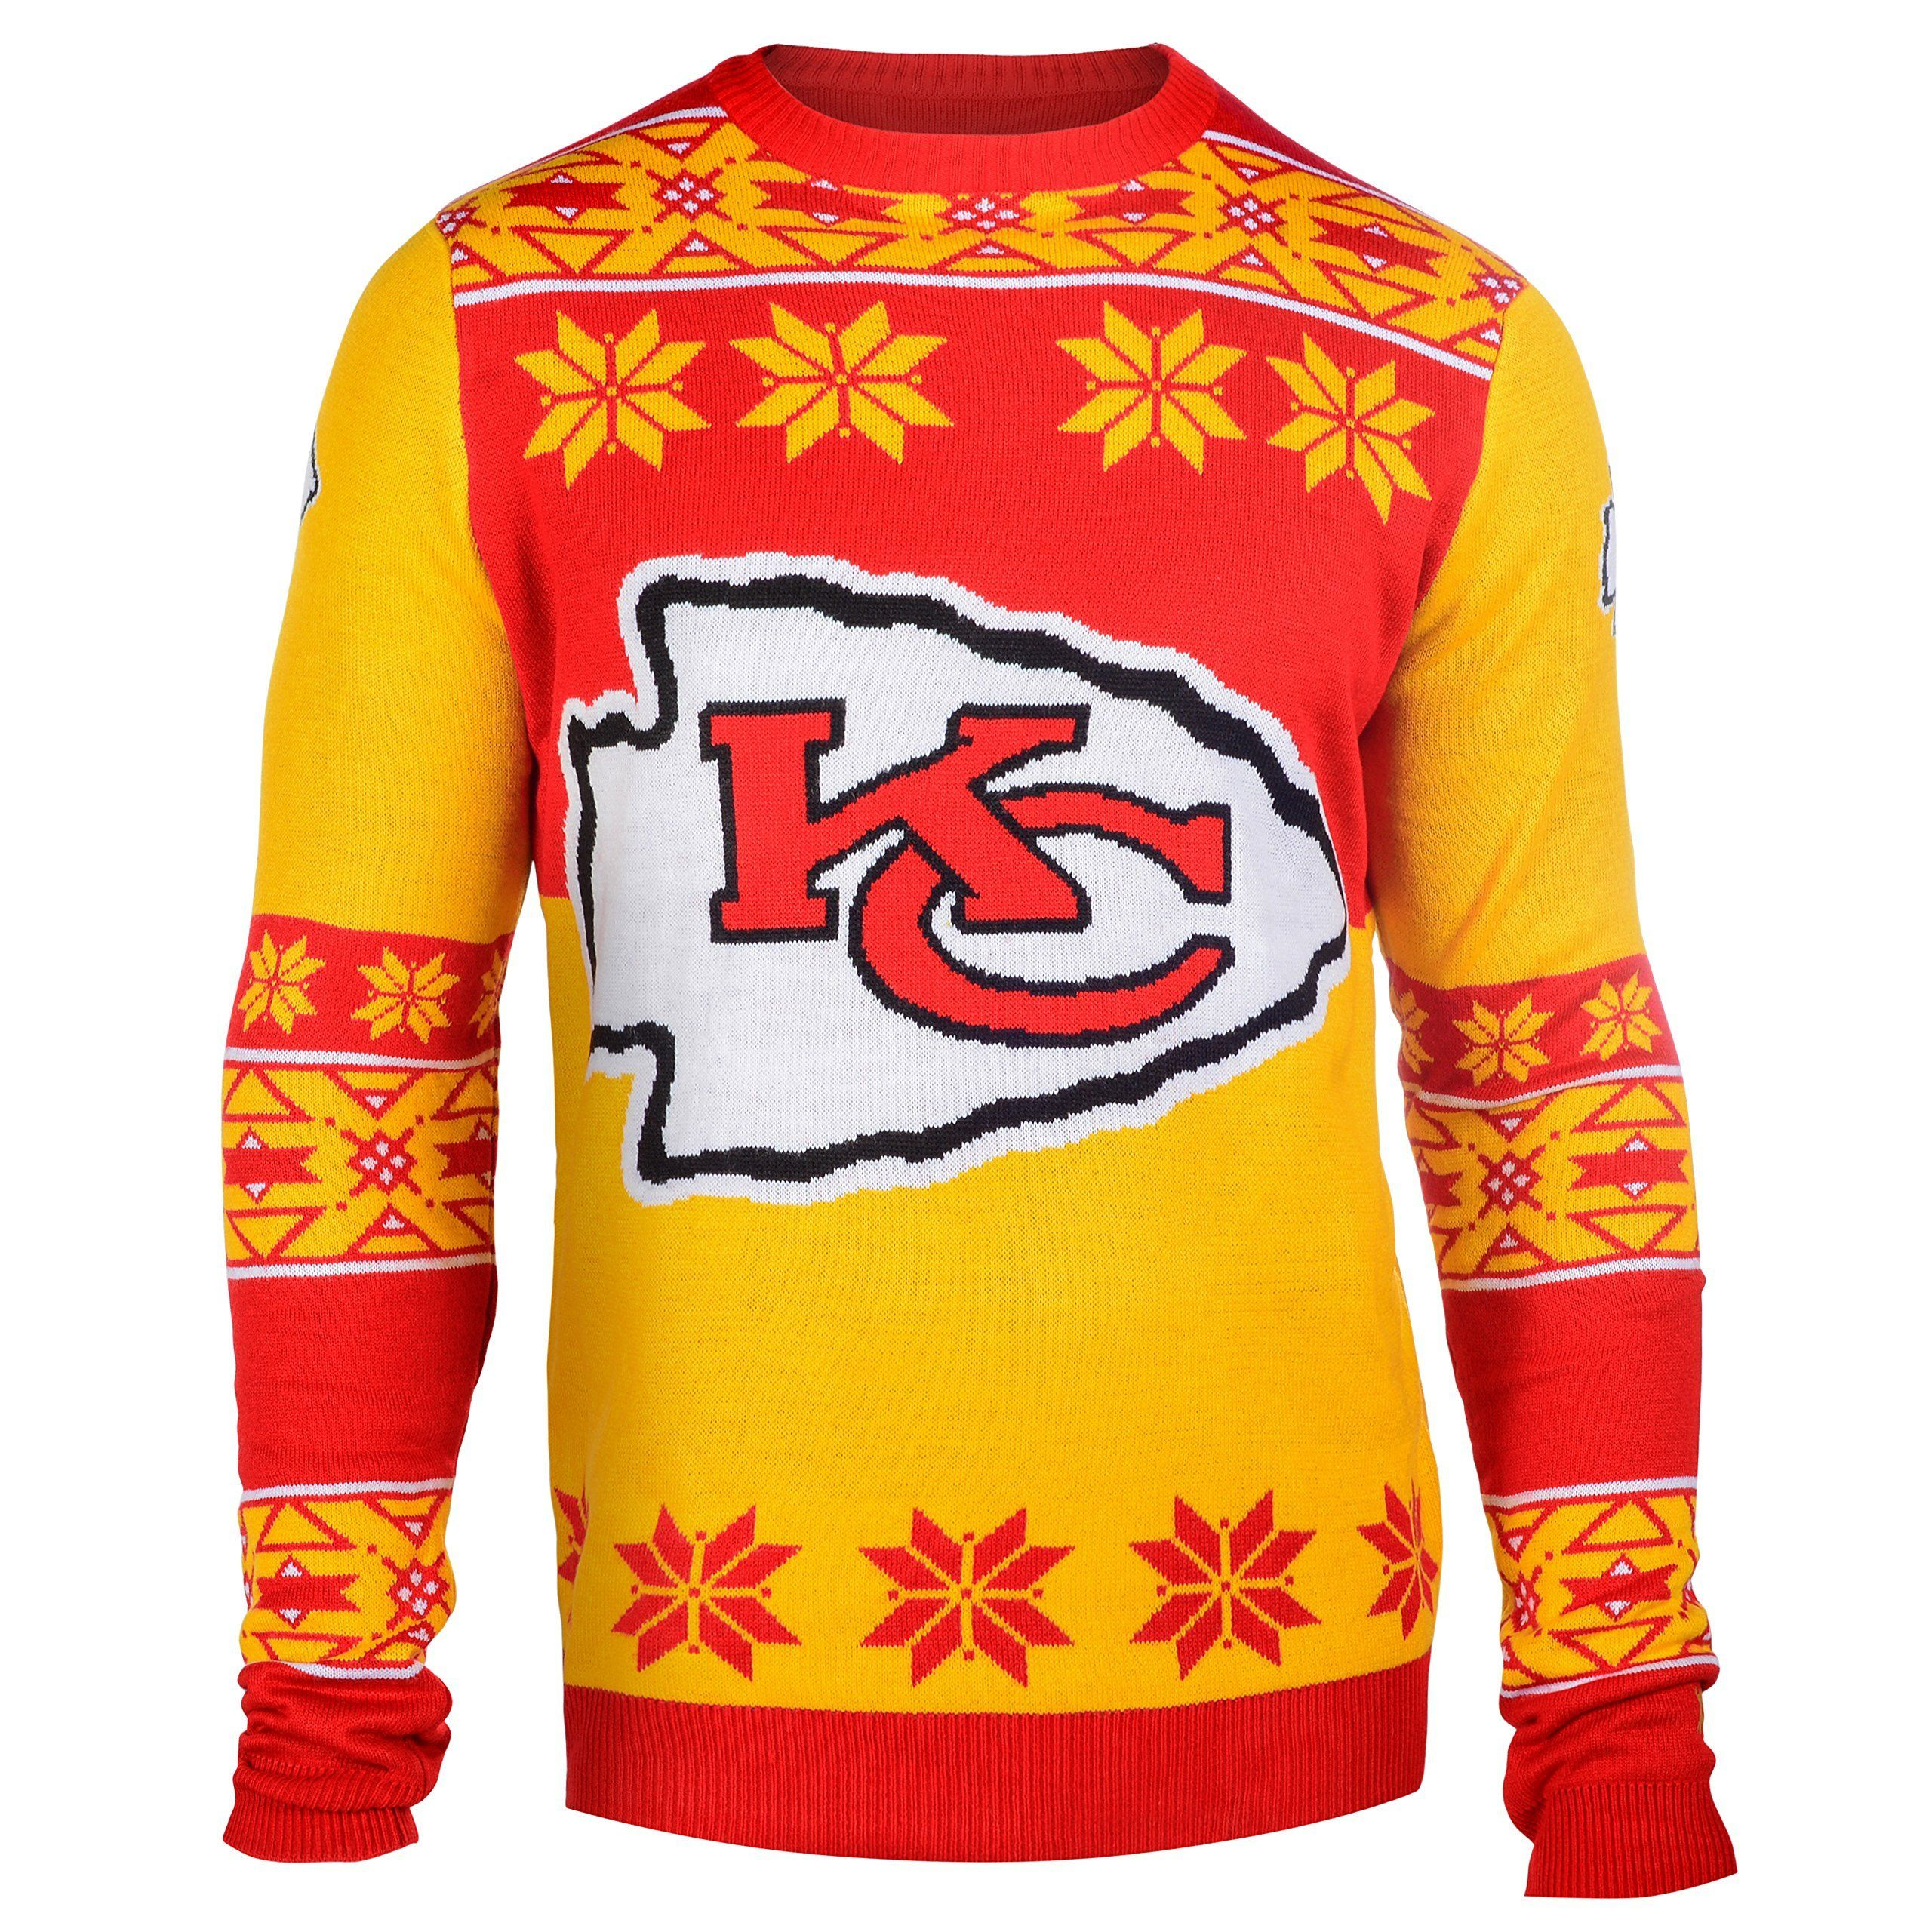 5f61dd53 Kansas City Chiefs Ugly Christmas Sweaters   Sports Themed Ugly ...